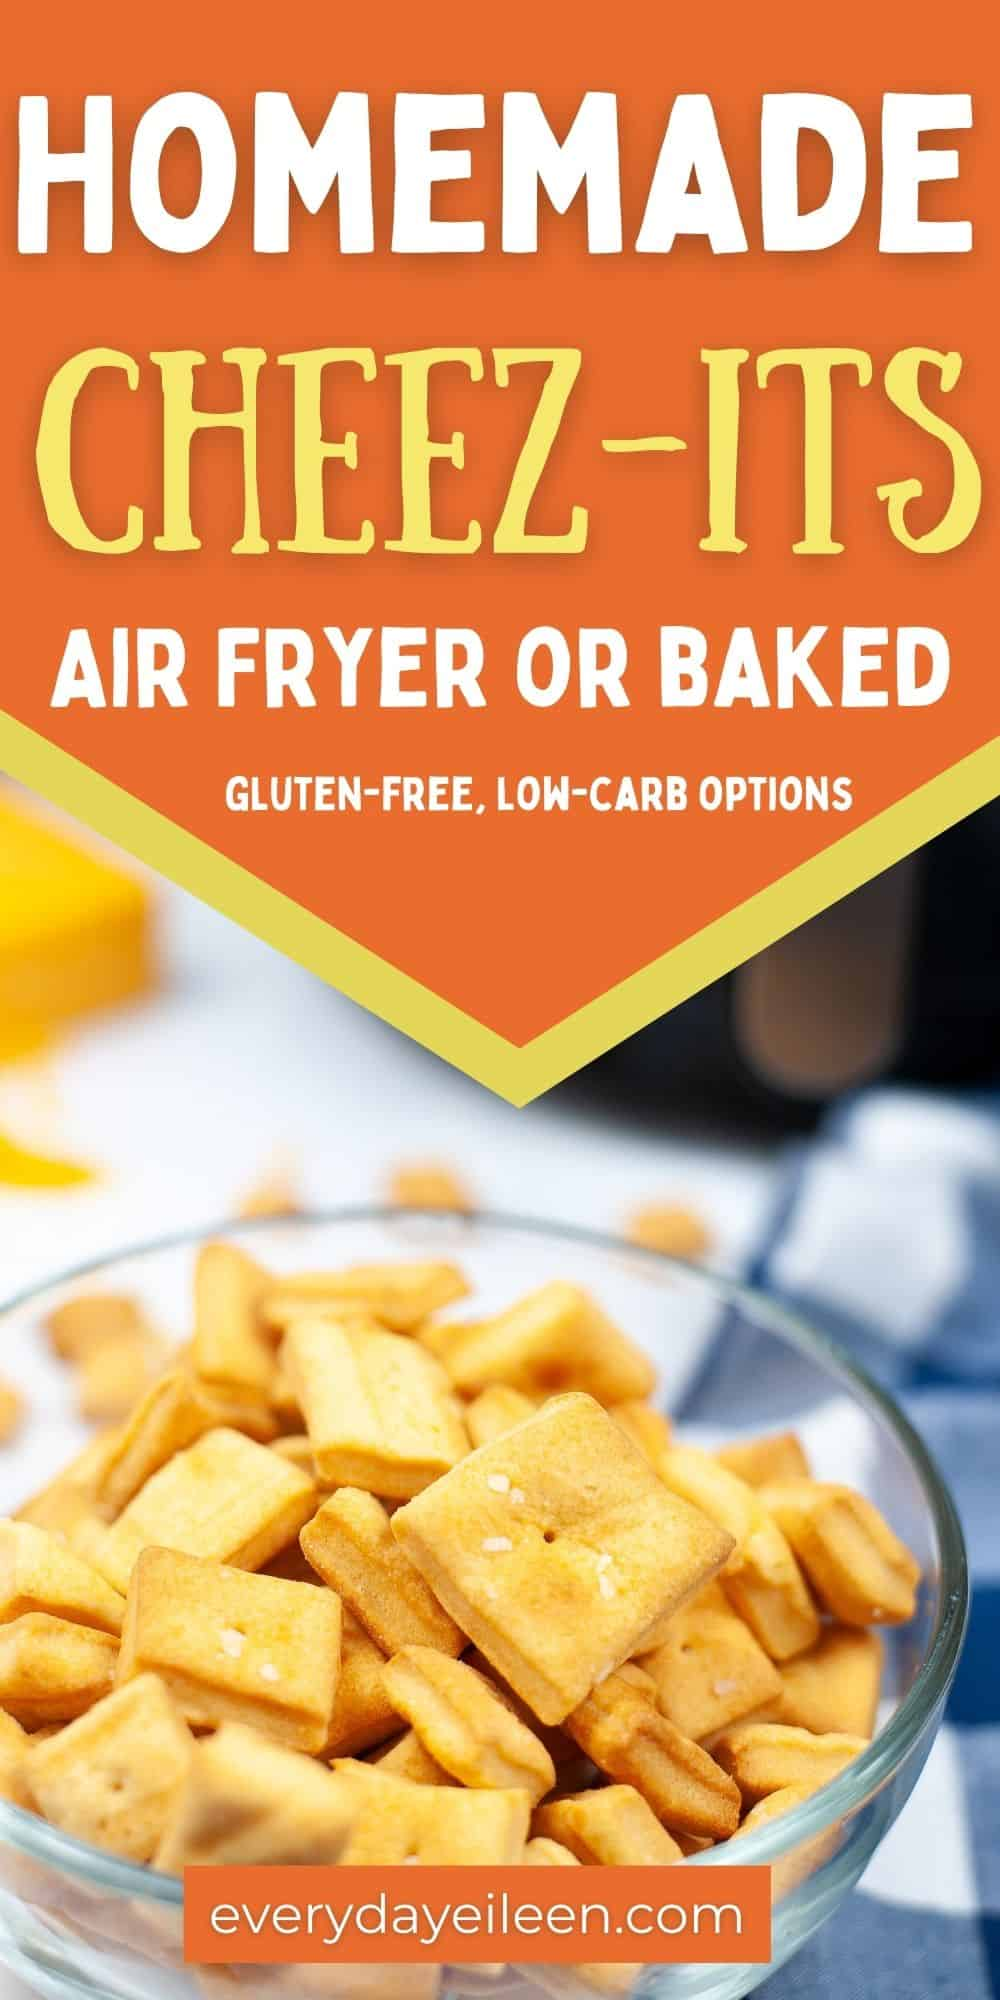 Homemade Cheez-Its can be either Air Fried or Baked in the oven for a great tasting DIY Cheese cracker. The cheddar flavors are fresh and bold. These crackers are a hit with the family and kids love these crackers. We have included both Gluten-free and Low-carb options for these tasty easy baking treats.  via @/everydayeileen/